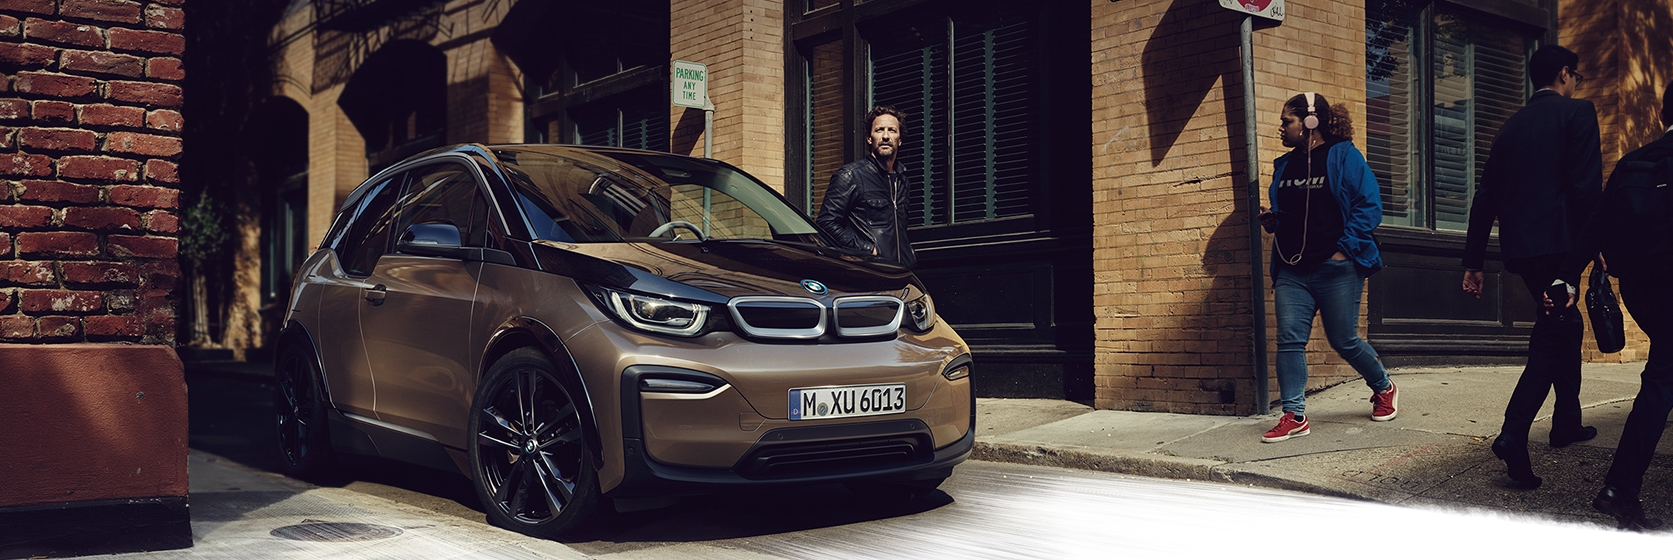 BMW i3 parked in old urban downtown area